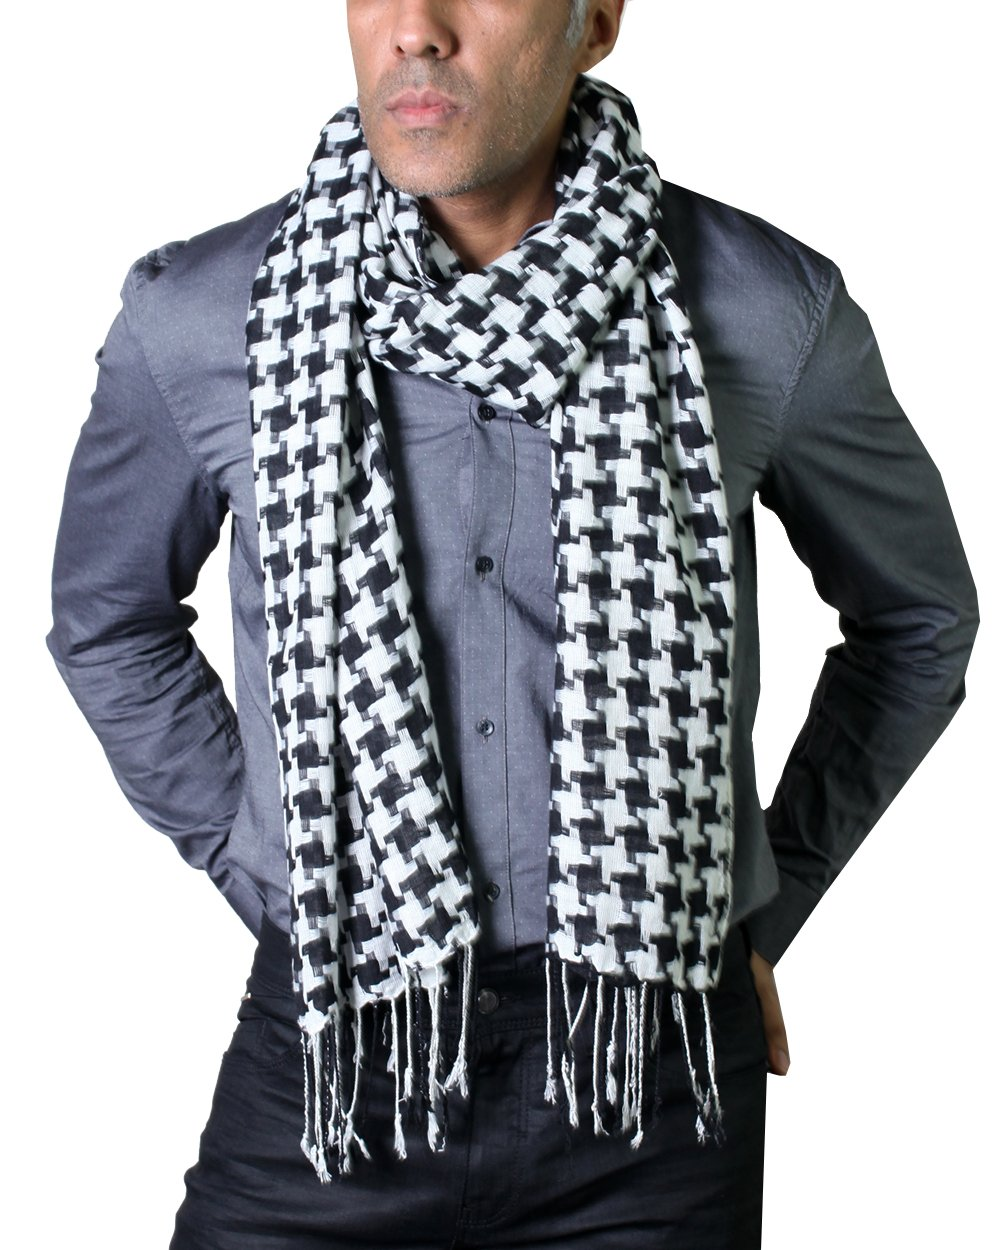 Men's Black and White Houndstooth Pattern Fashion Scarf, Lightweight & Soft